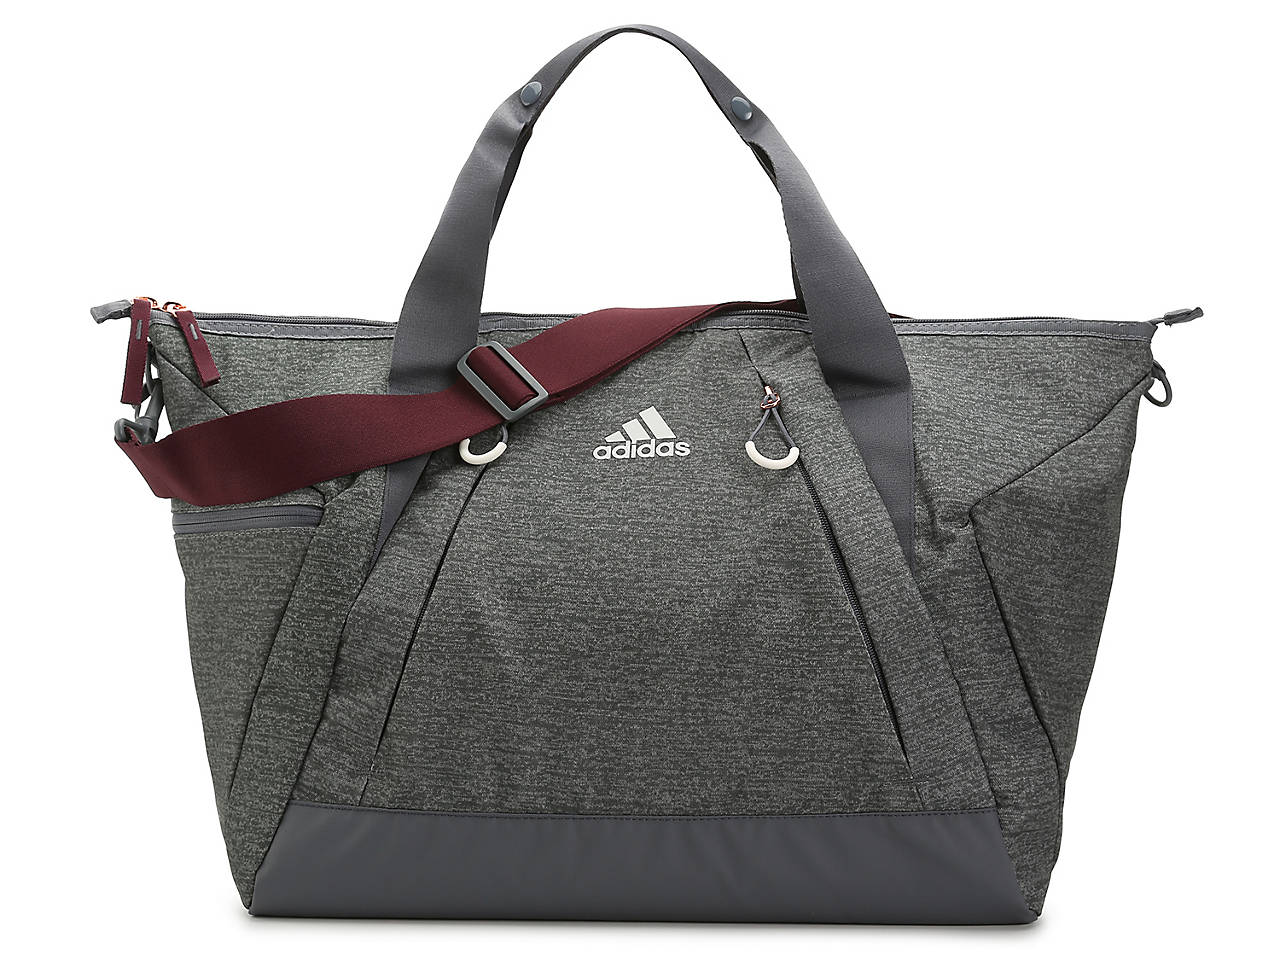 adidas Studio II Gym Bag Women s Handbags   Accessories  05802024cbc9e